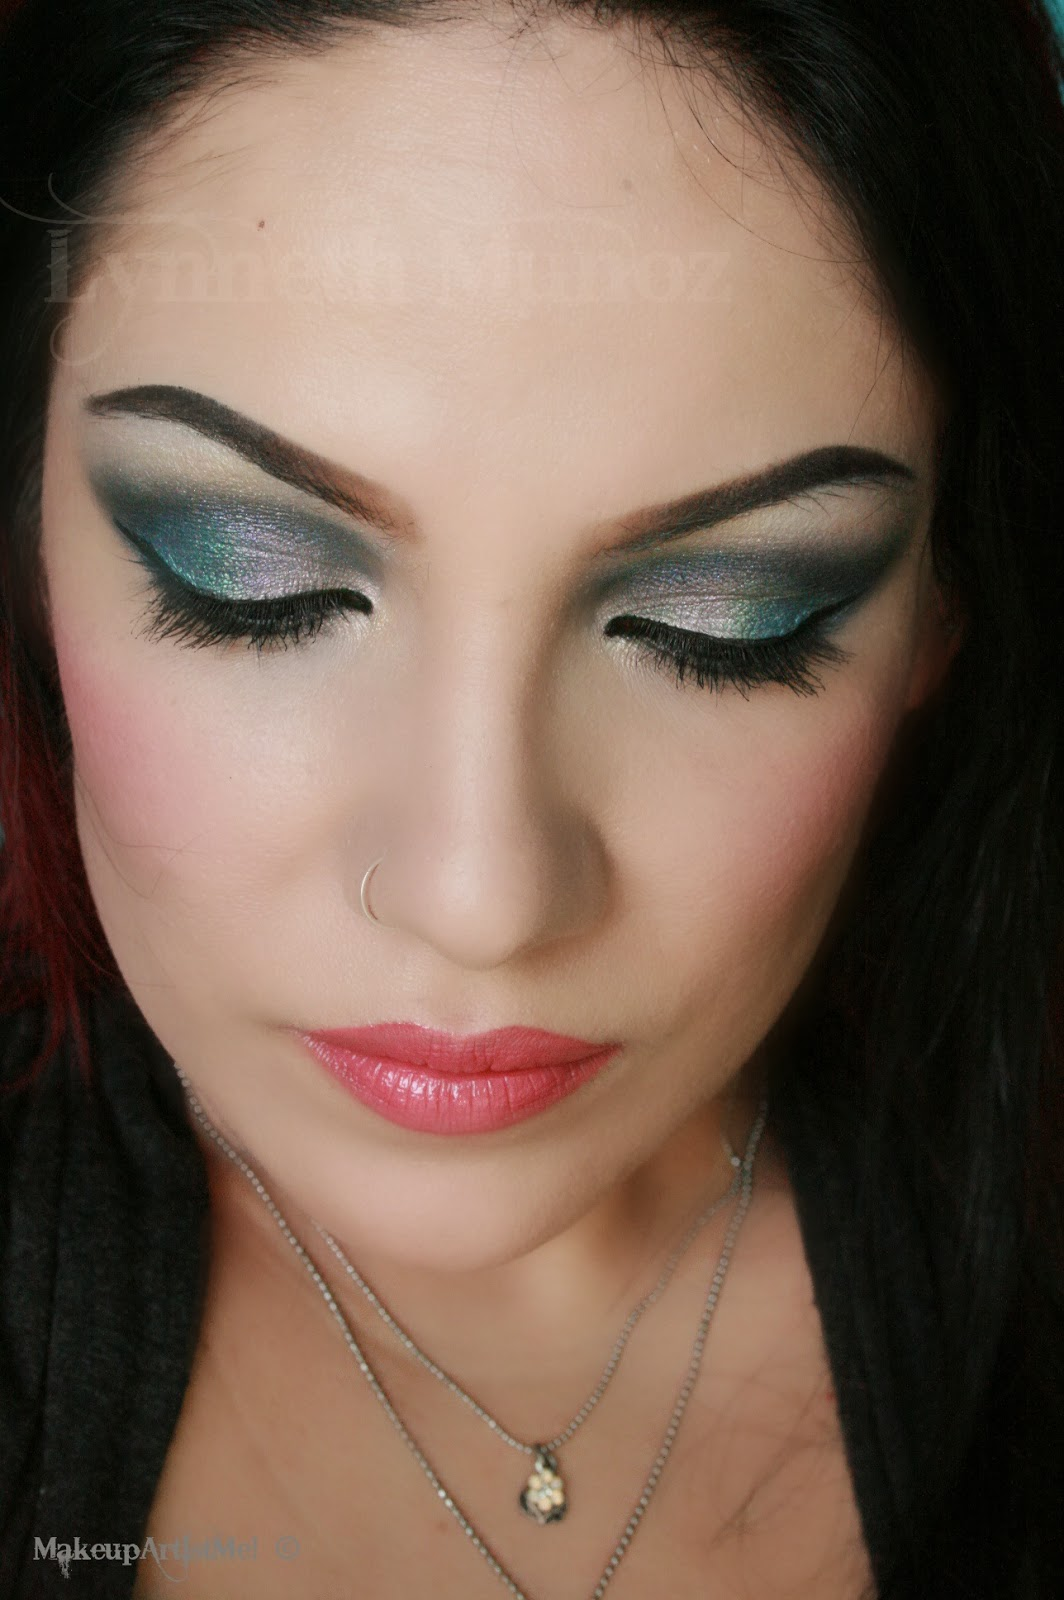 Make Up Fashion And 50 Shades Of Pink: Make-up Artist Me!: Silver Lining- Makeup Tutorial